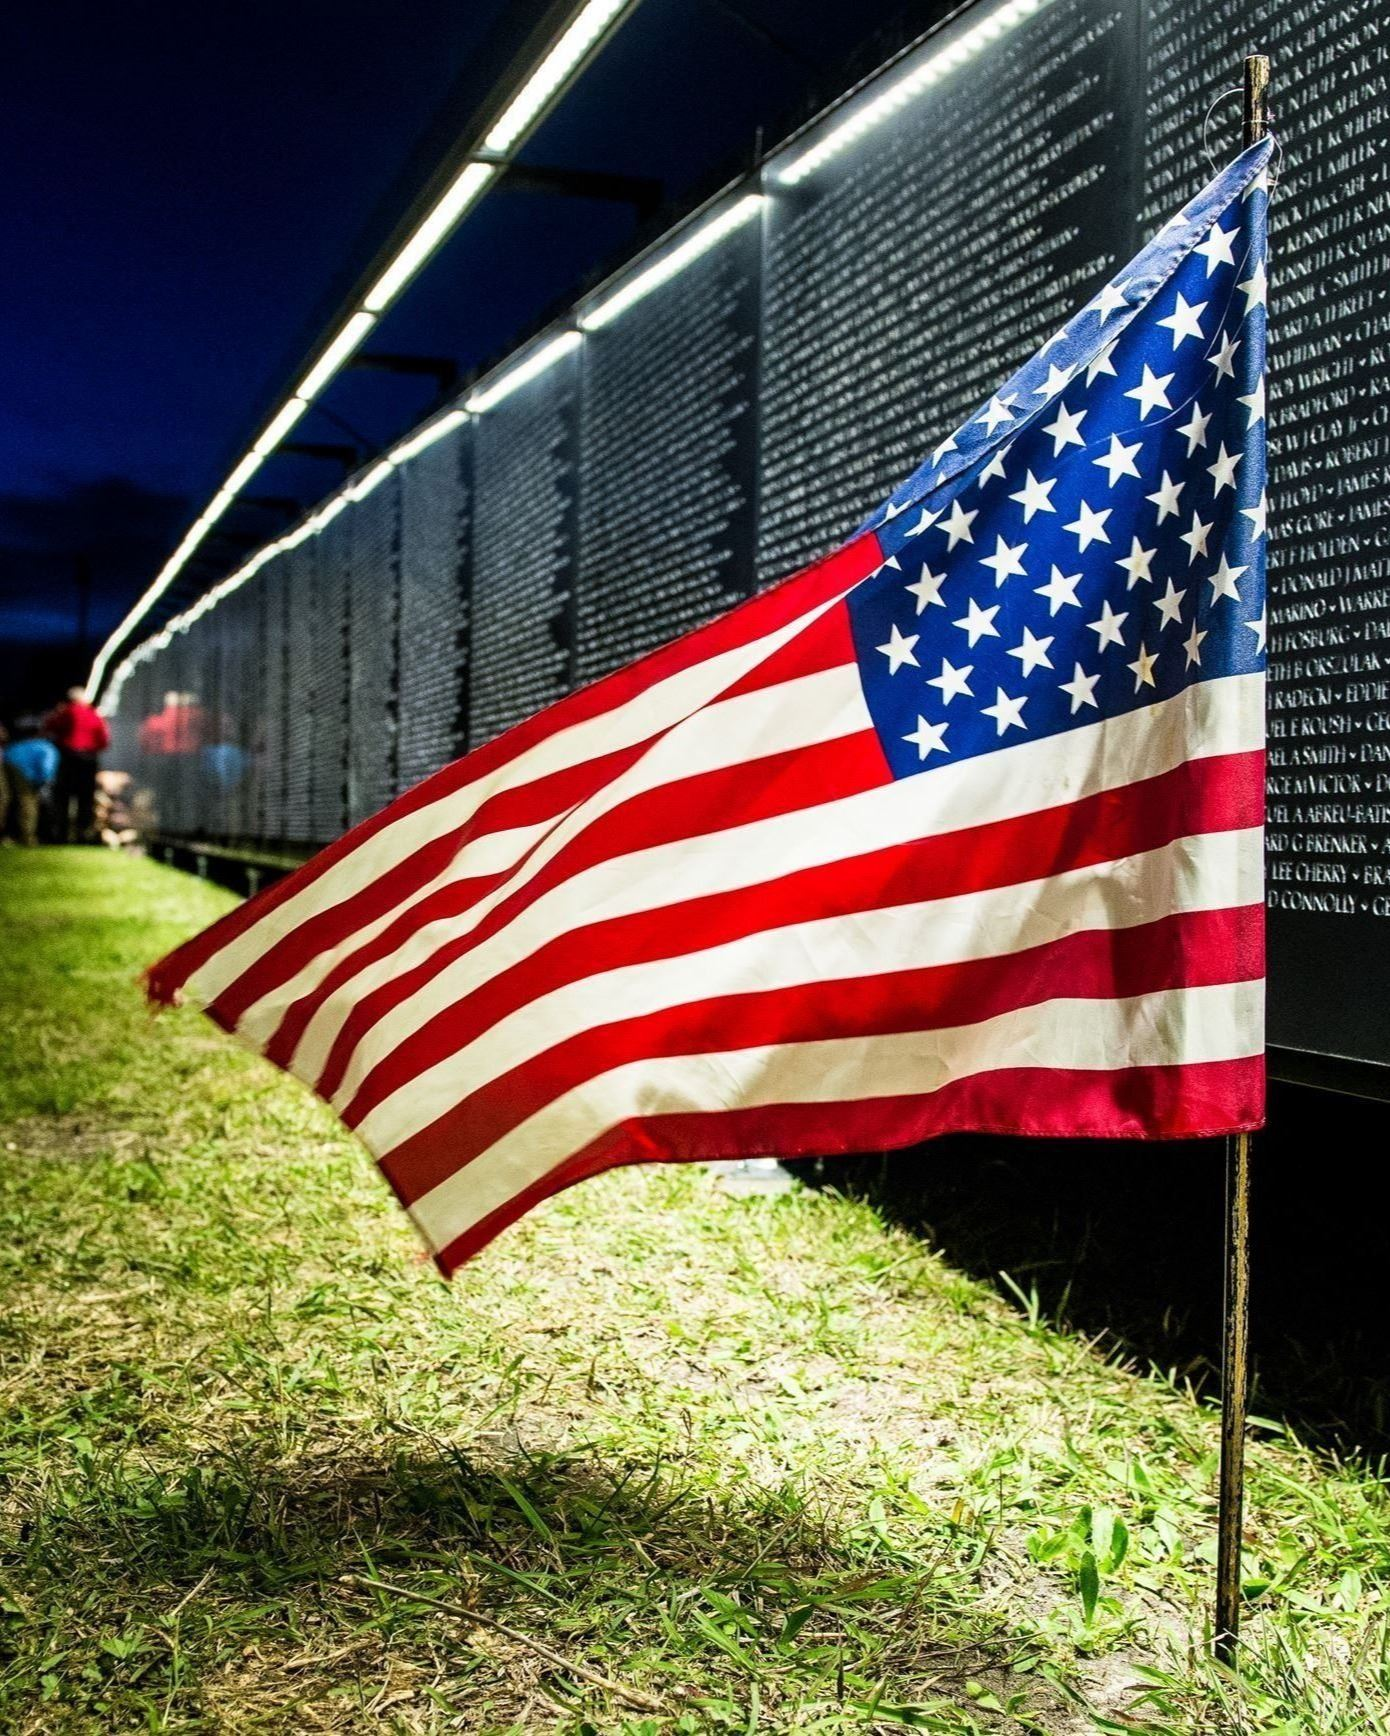 The wall that heals in Portland - american flag with illuminated wall at night